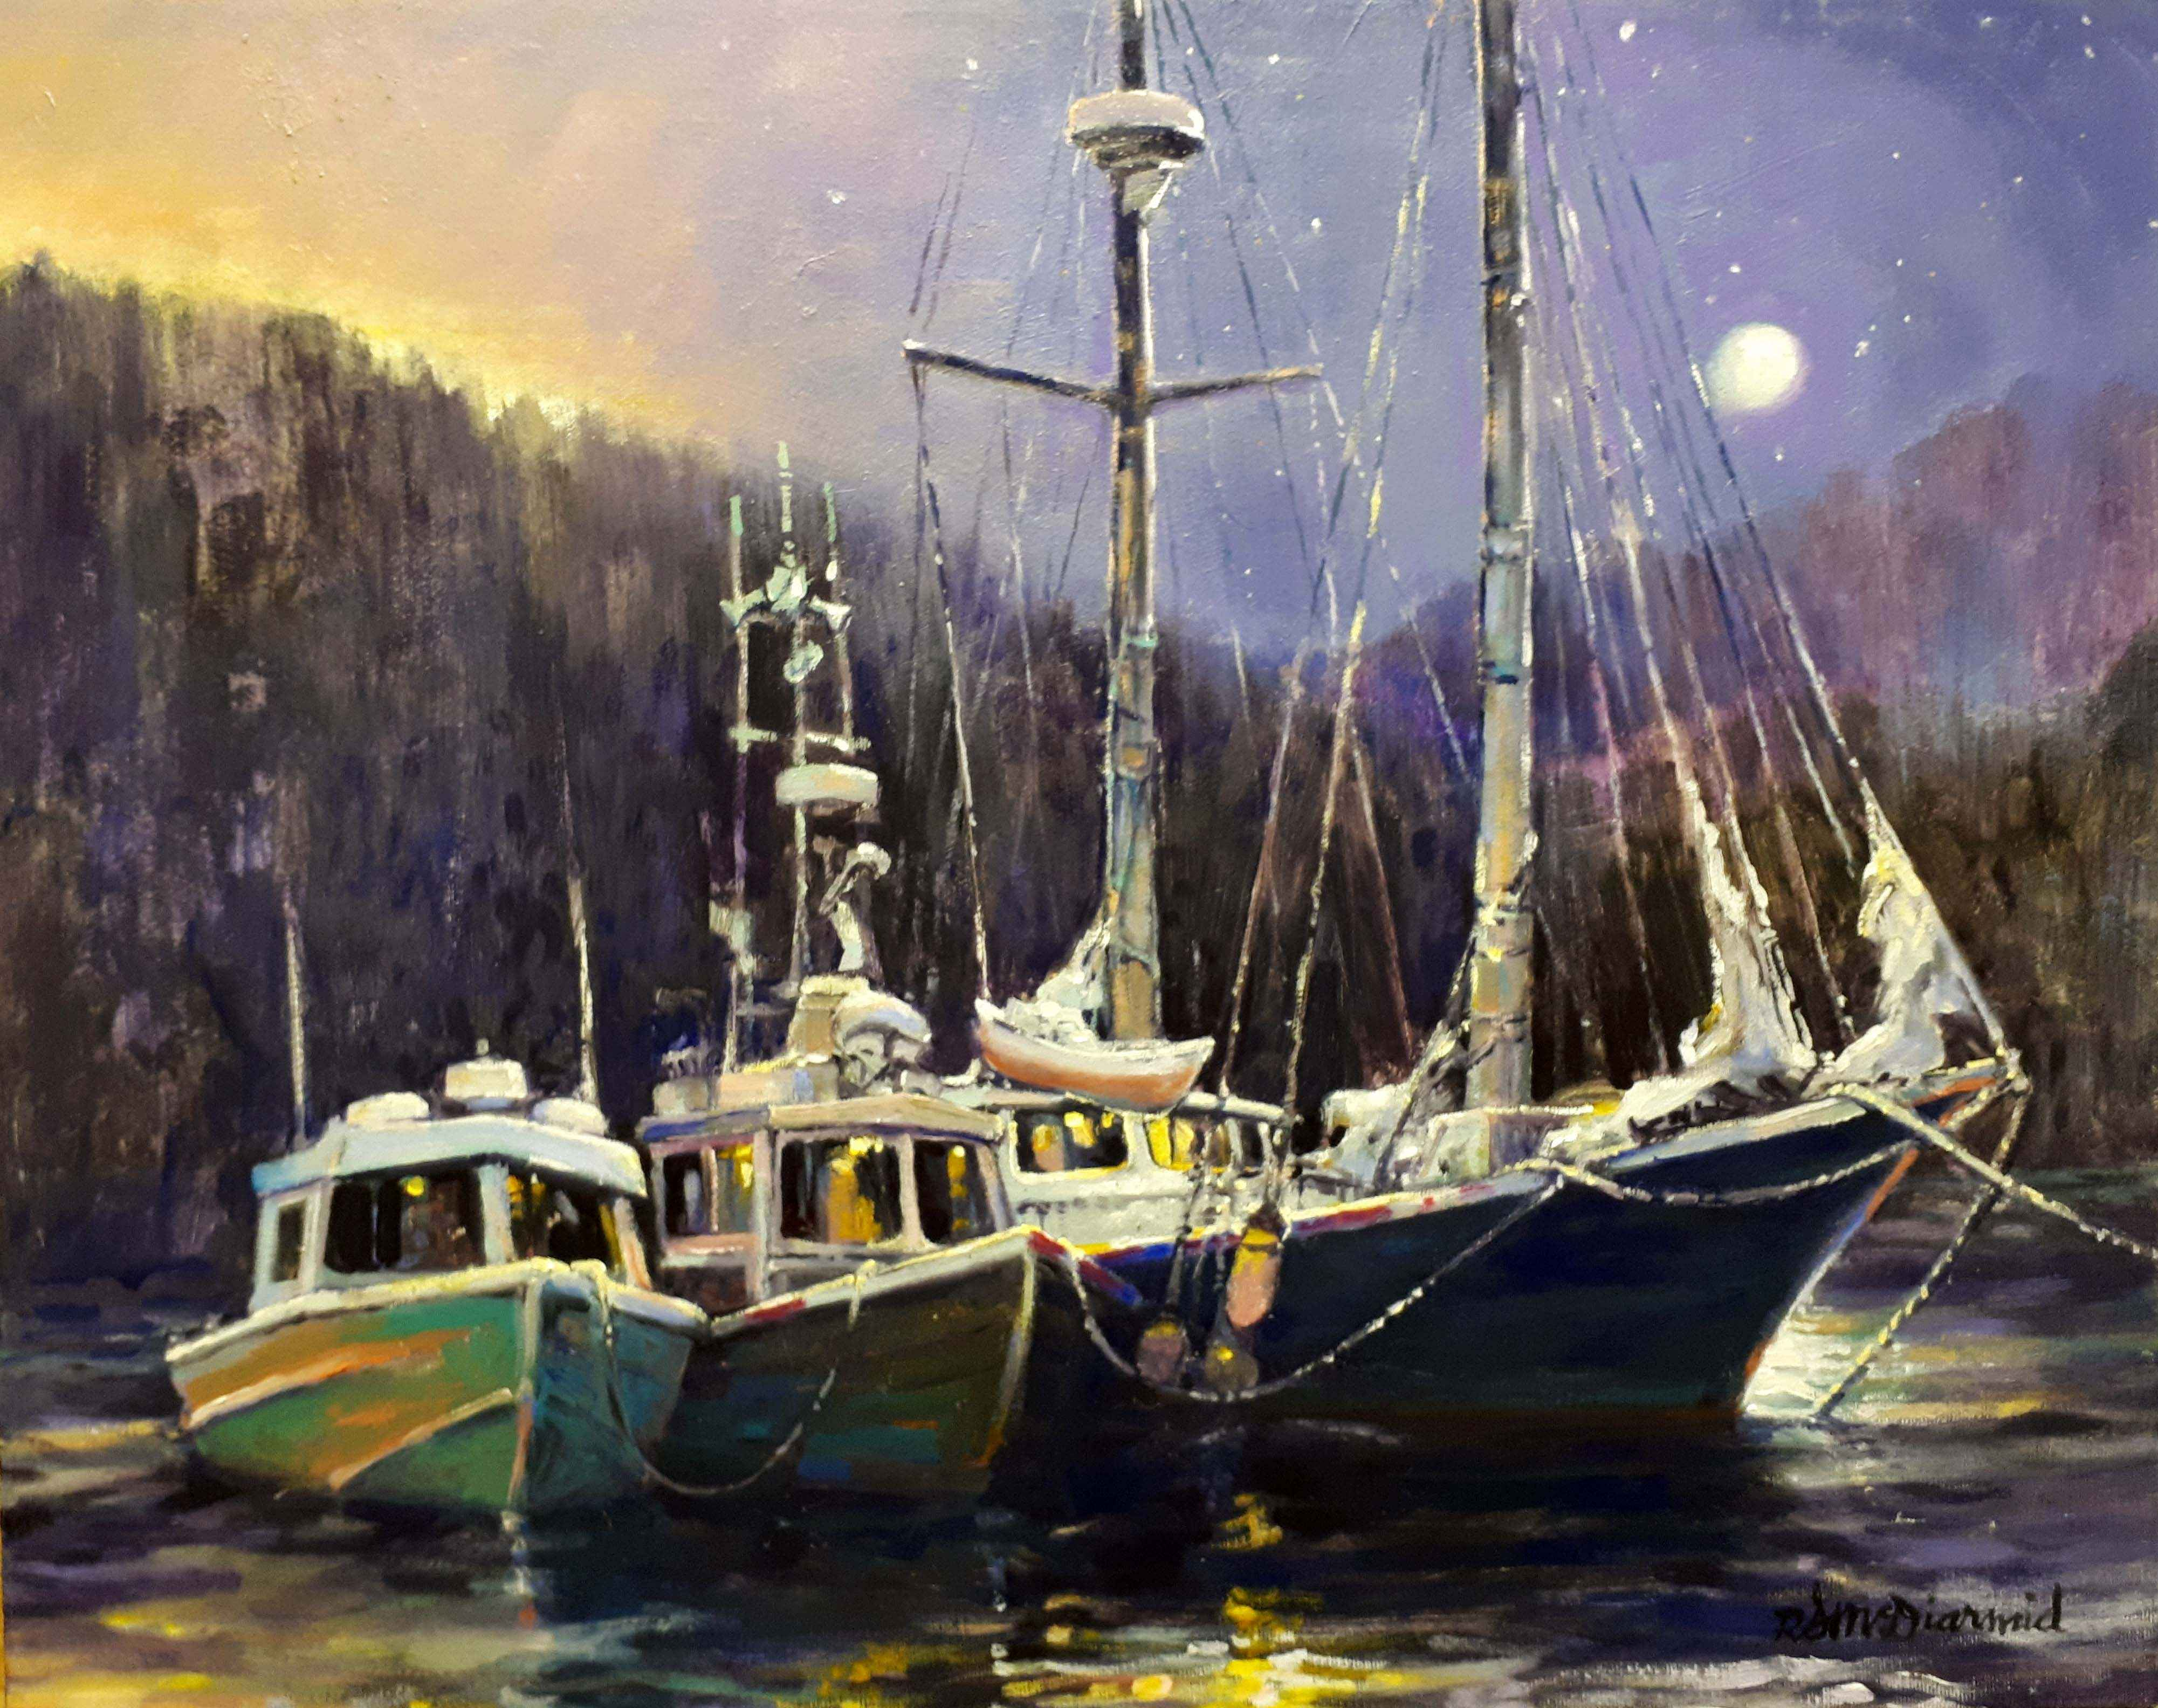 Nestled for the Night by  Rick McDiarmid - Masterpiece Online